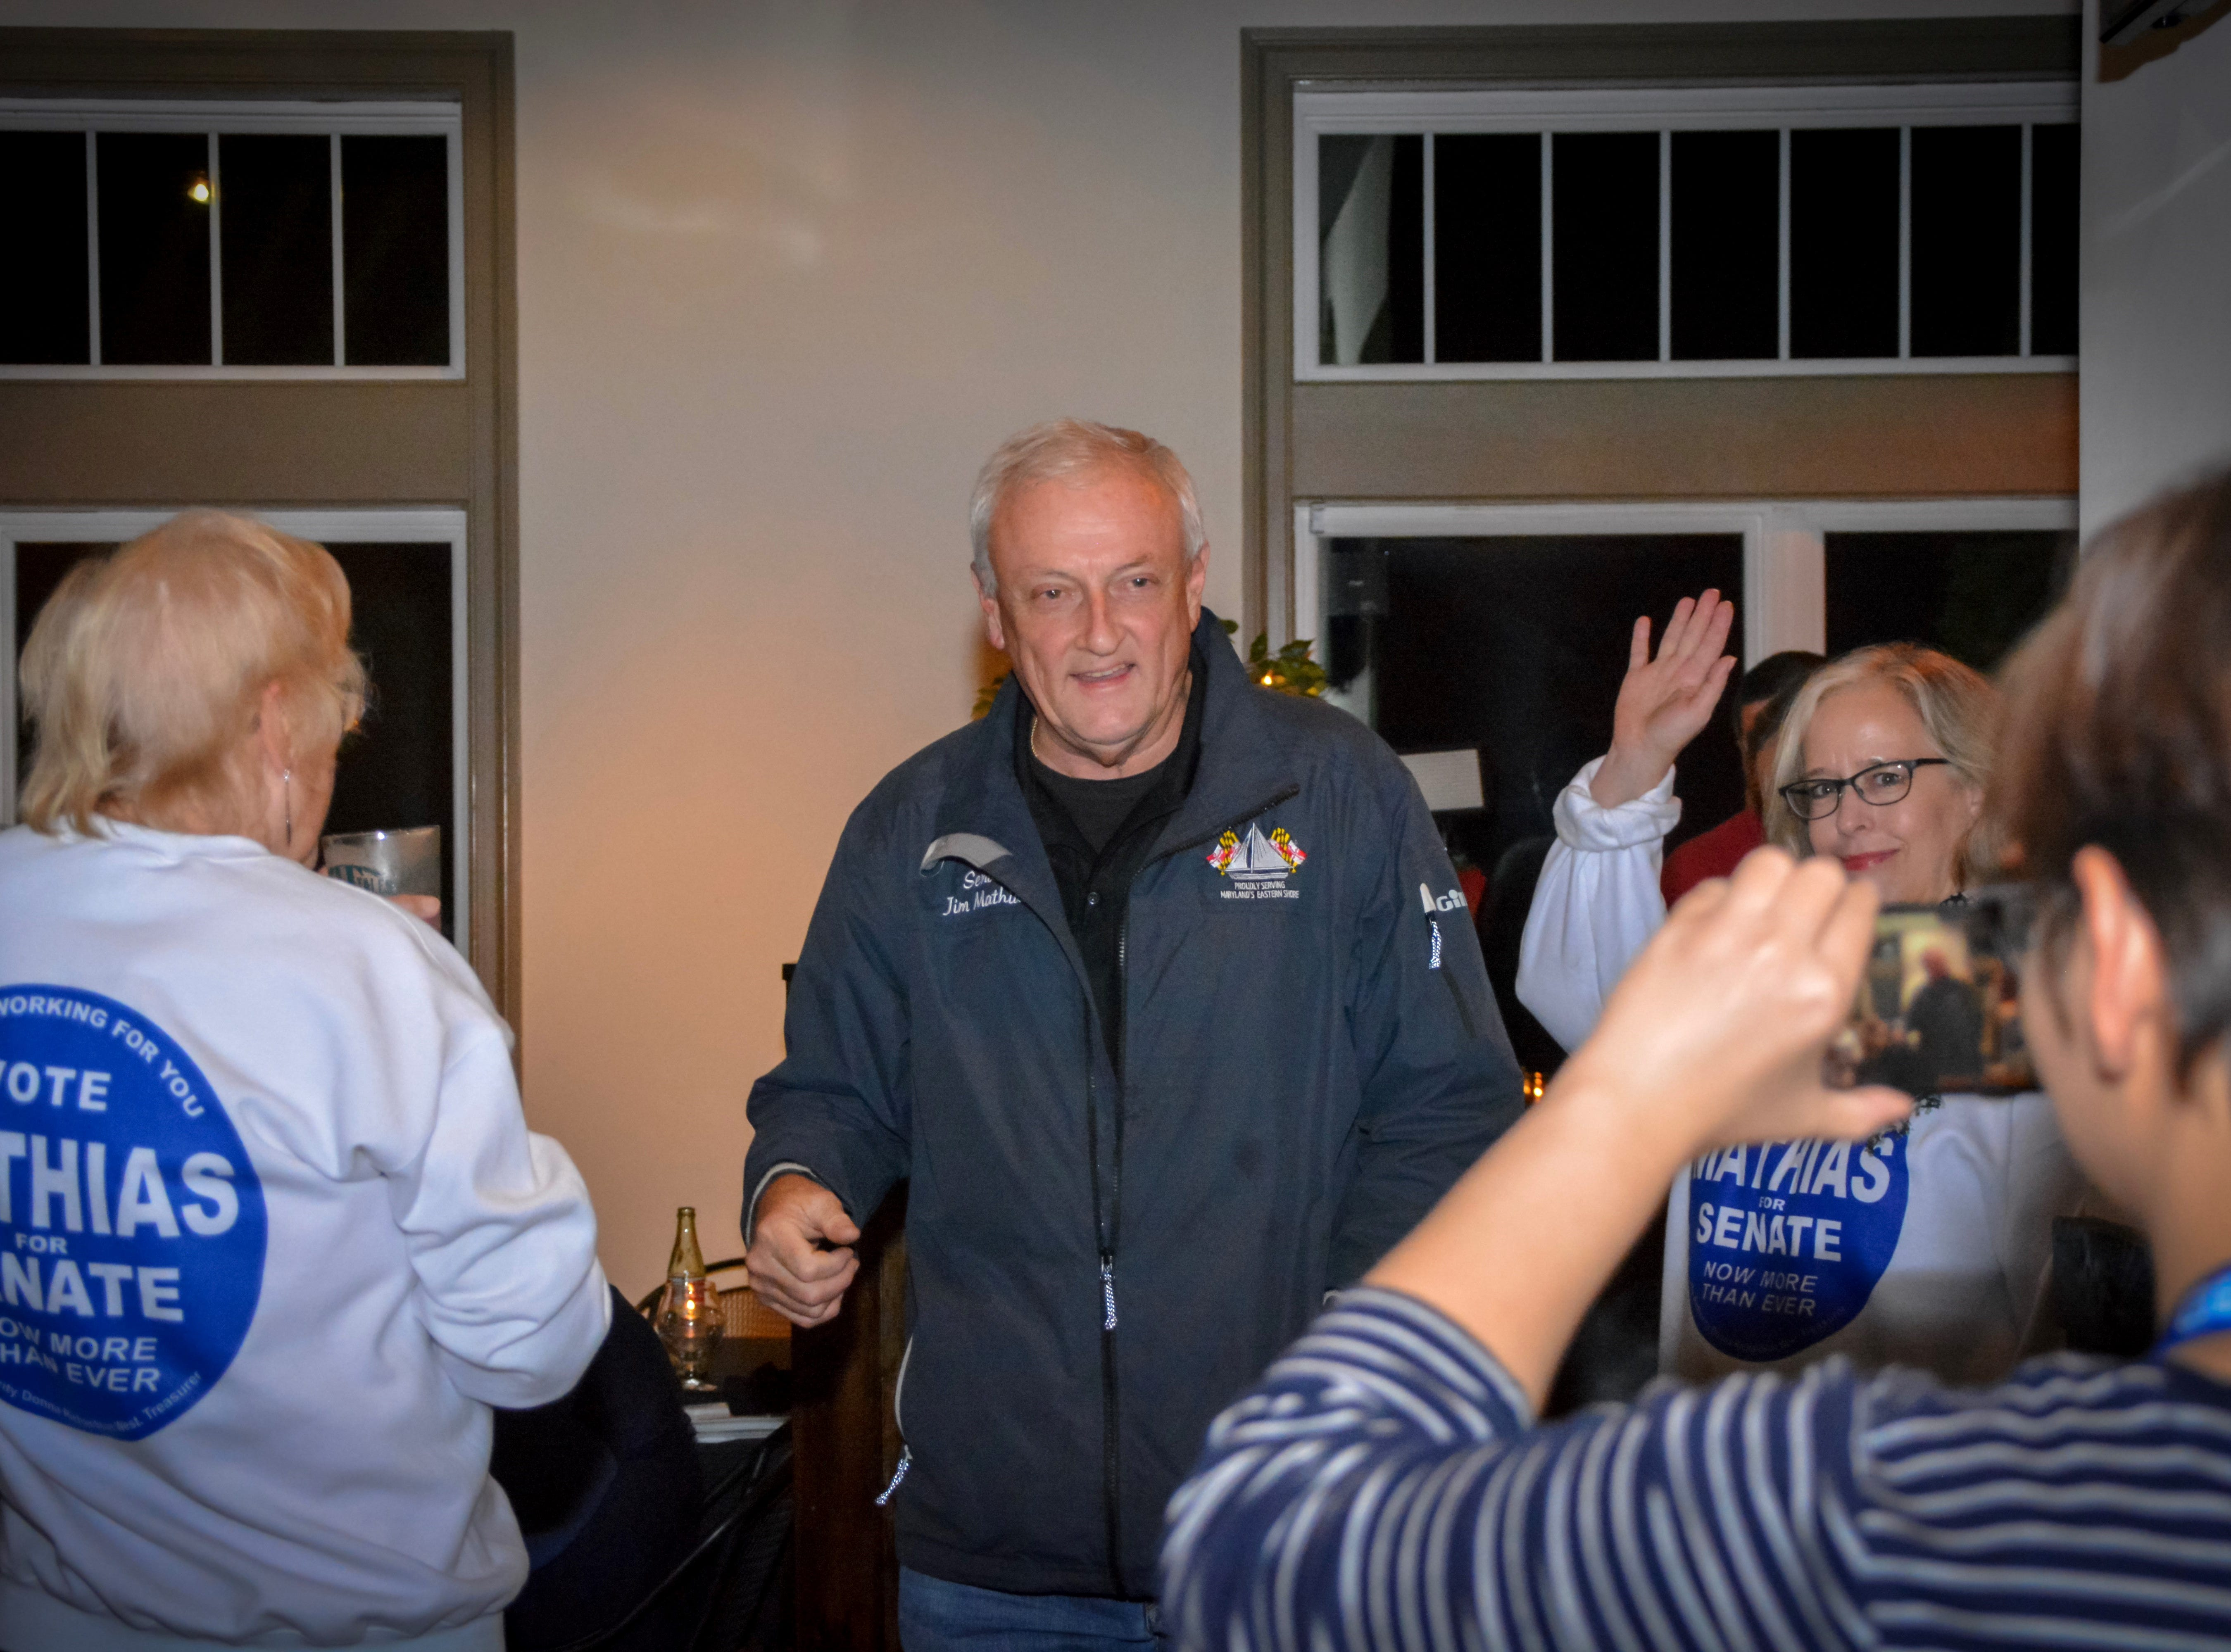 Sen. Jim Mathias arrives at Tall Tales Brewing Company in Parsonsburg to join a crowd of supporters for election night on Tuesday, Nov. 6, 2018.